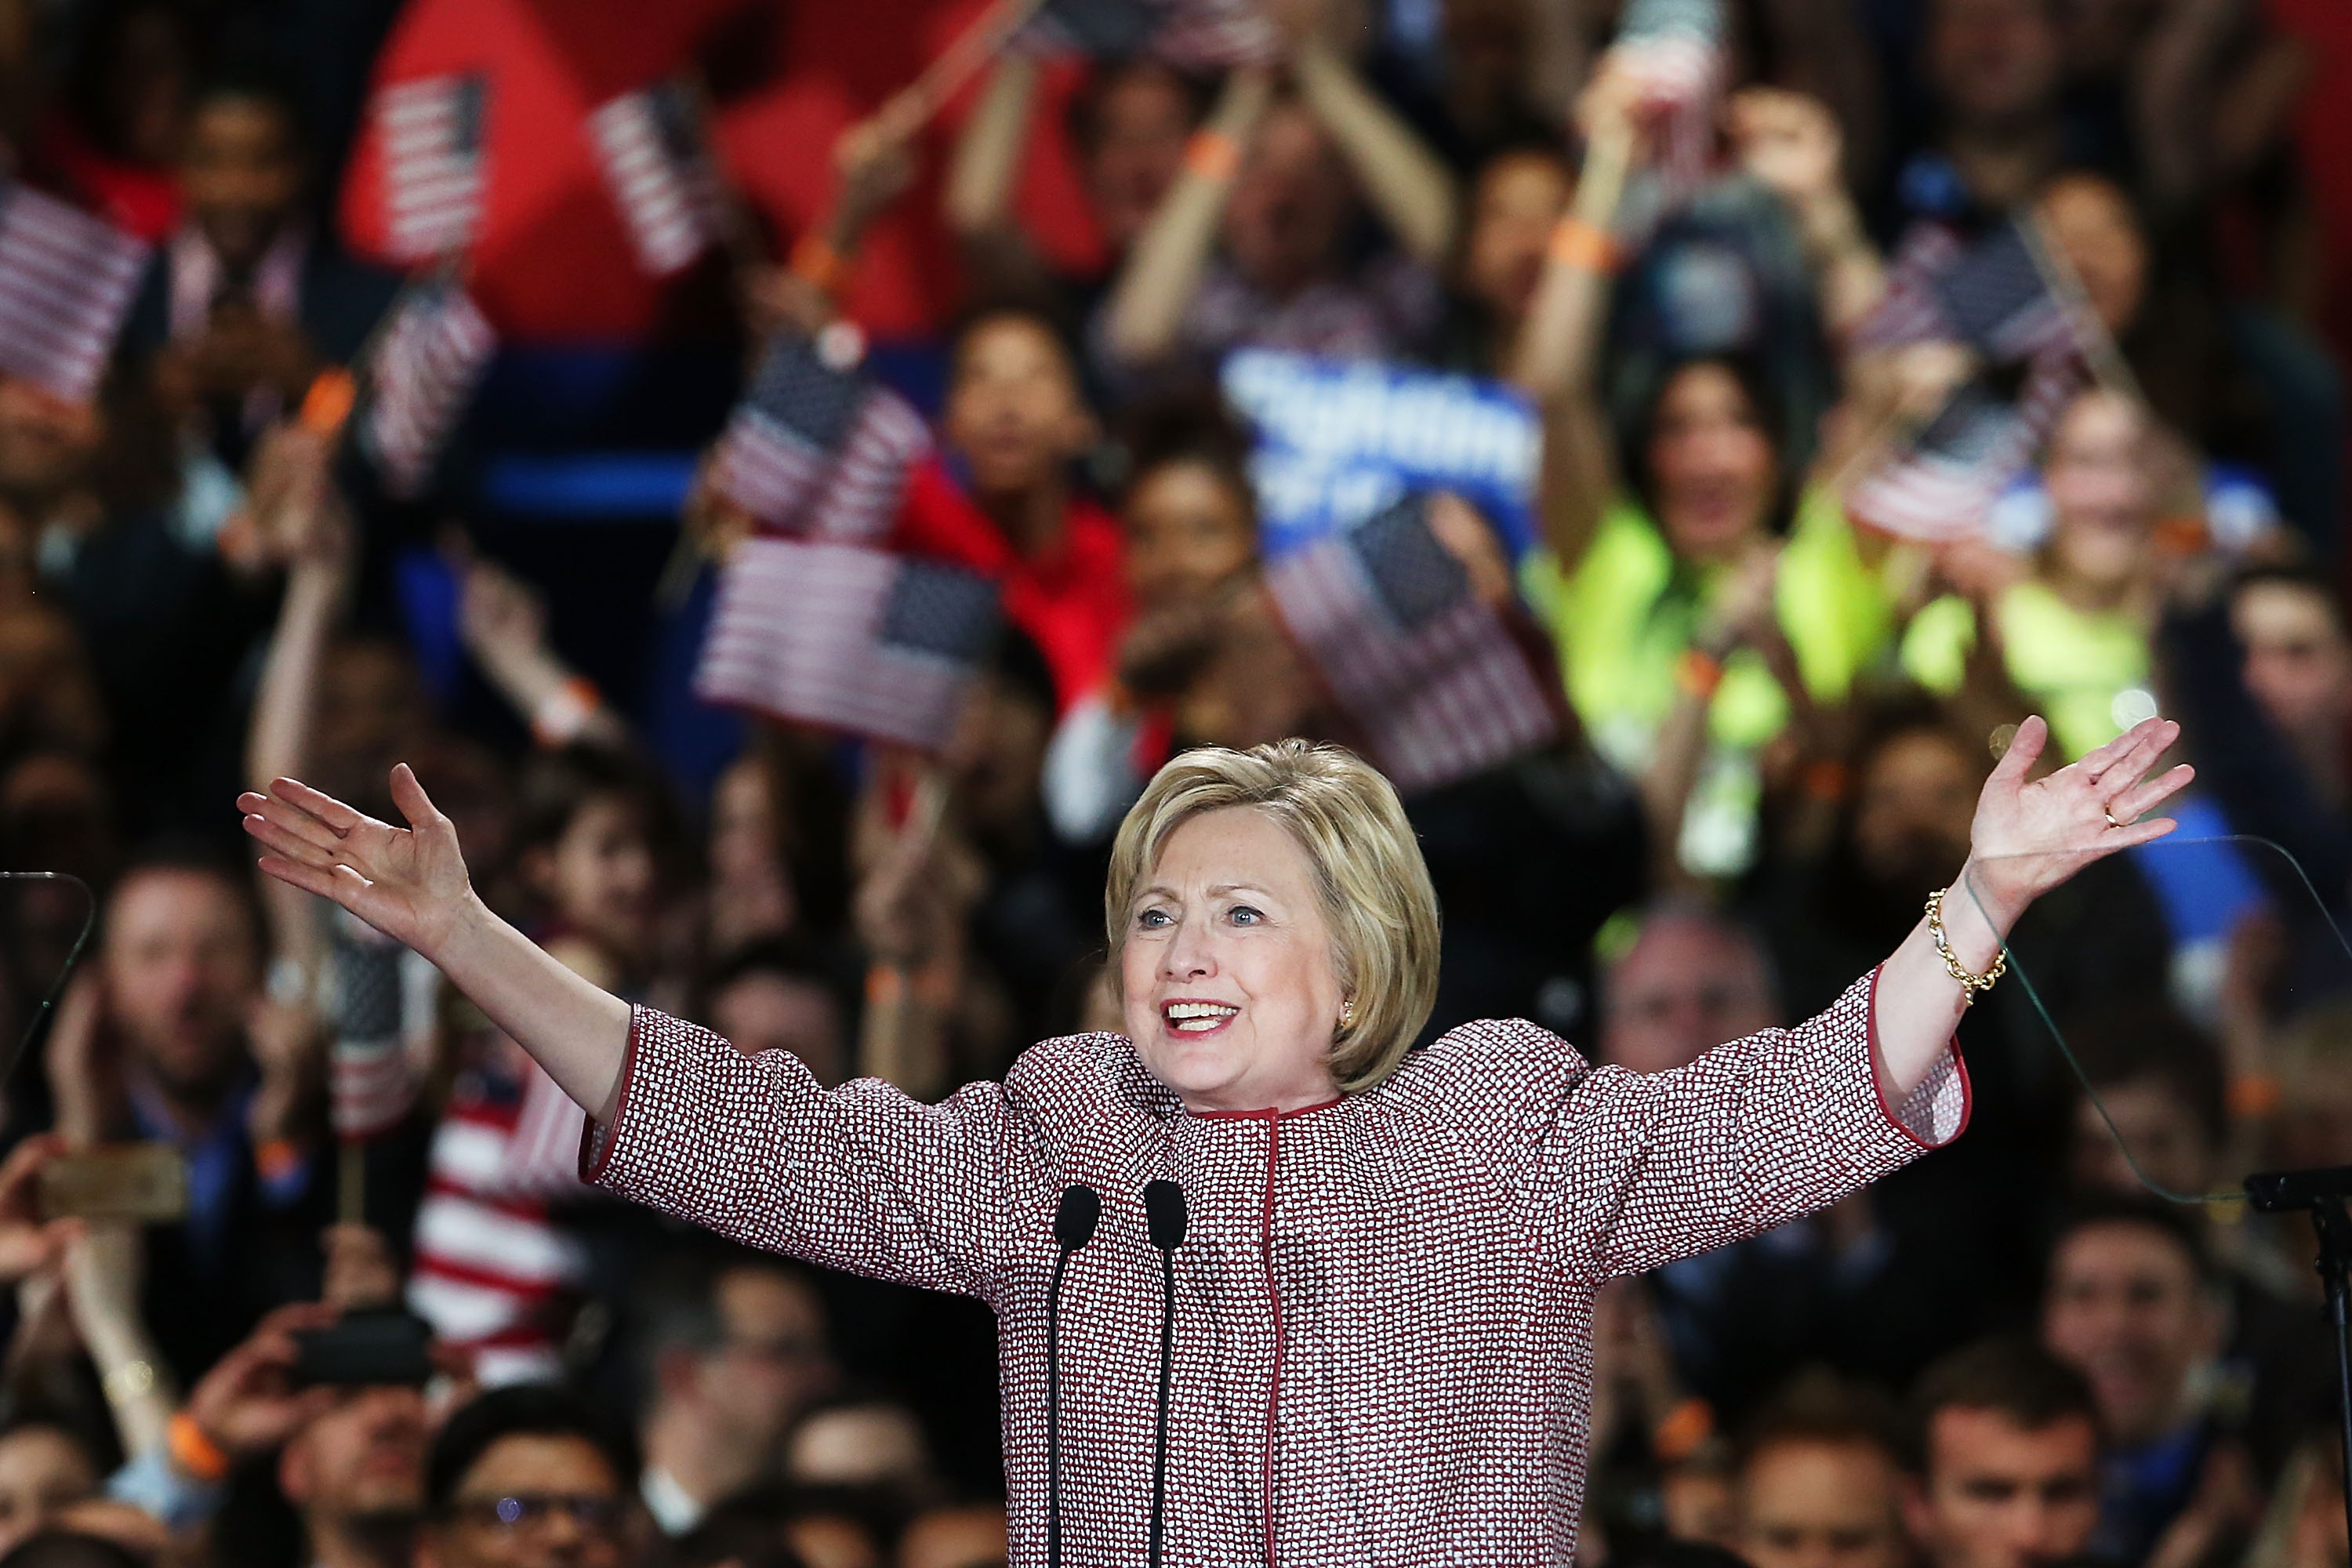 Clinton raising arms in victory